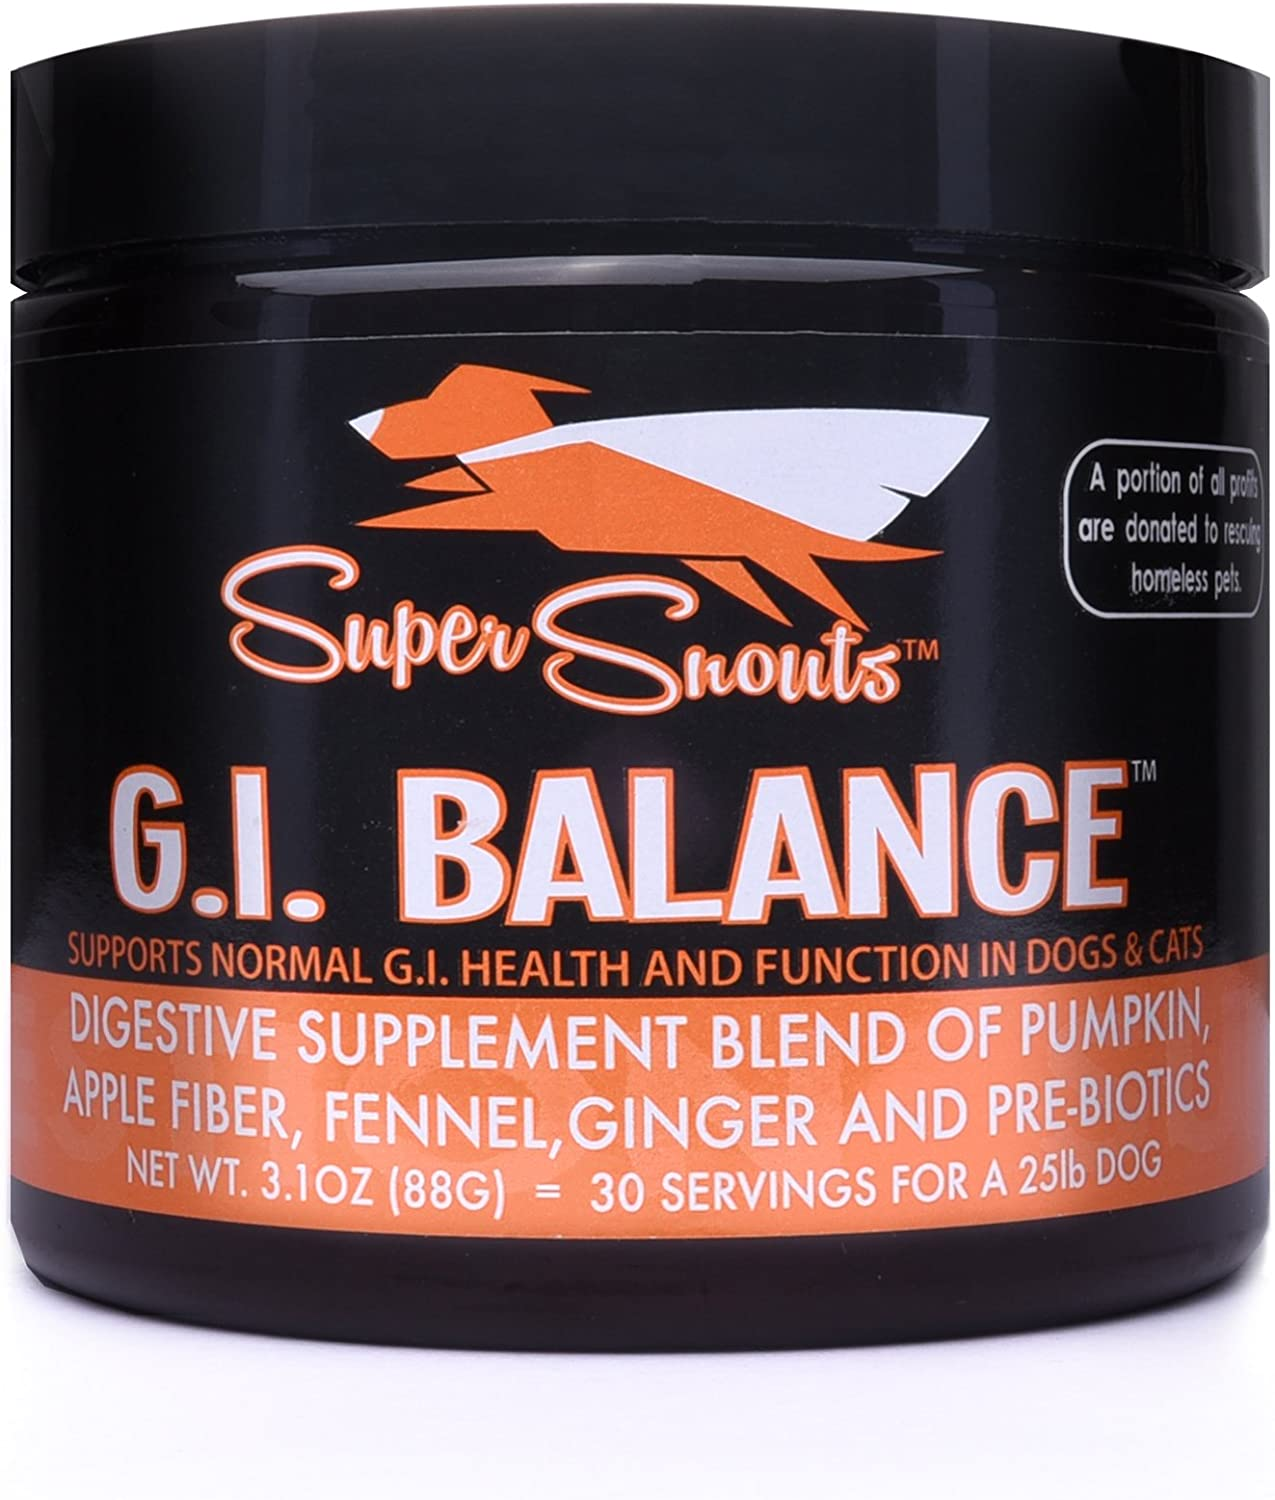 G.I. Balance Digestive Blend Supplement for Dogs and Cats